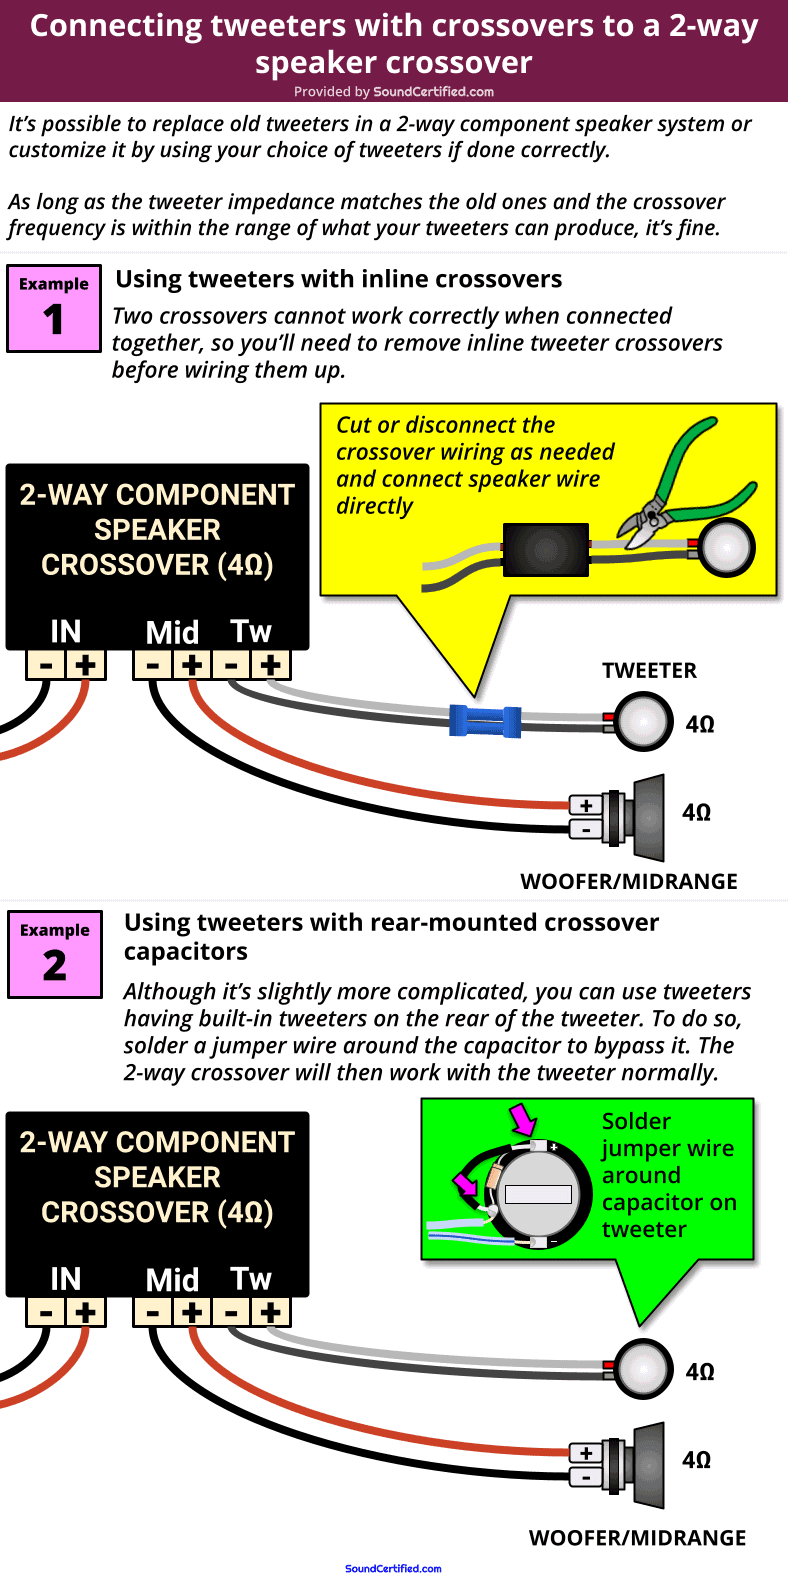 How to use tweeters with built in crossovers with 2-way speaker crossover diagram